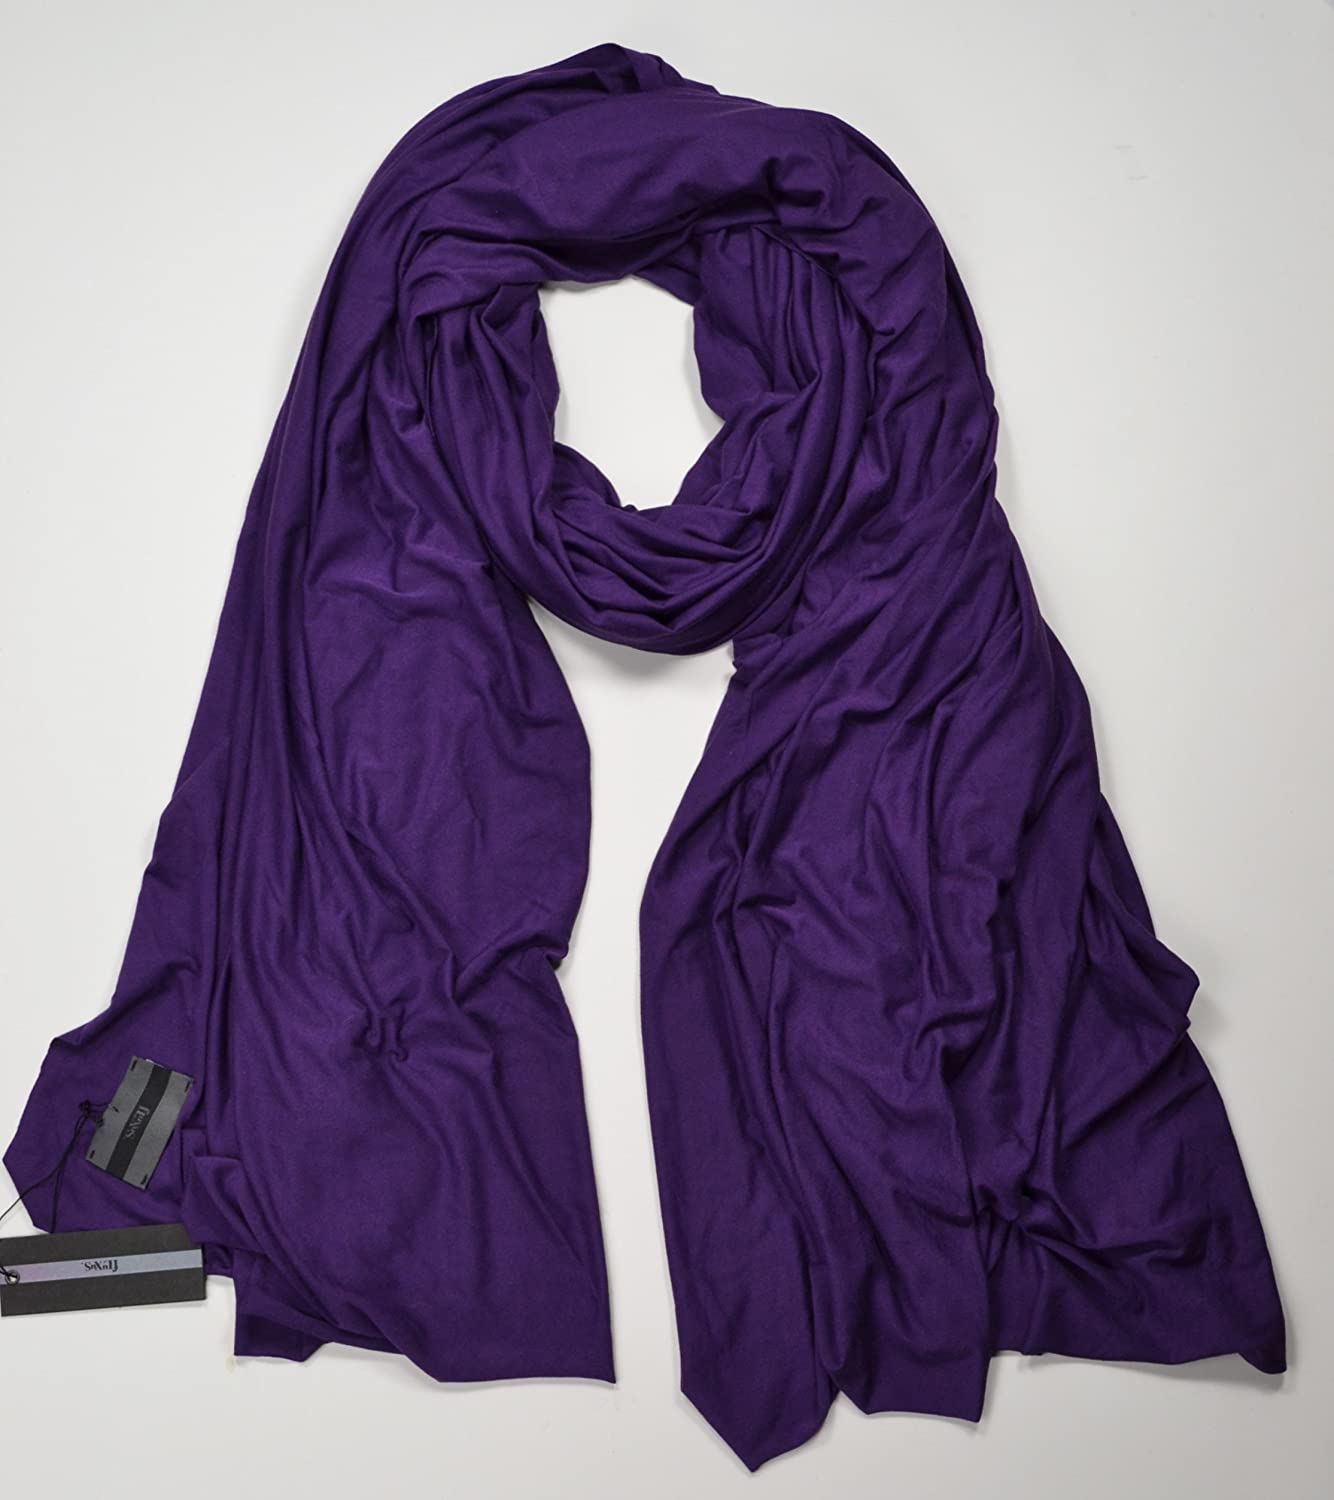 Nomad fluxus scarf how to wear foto